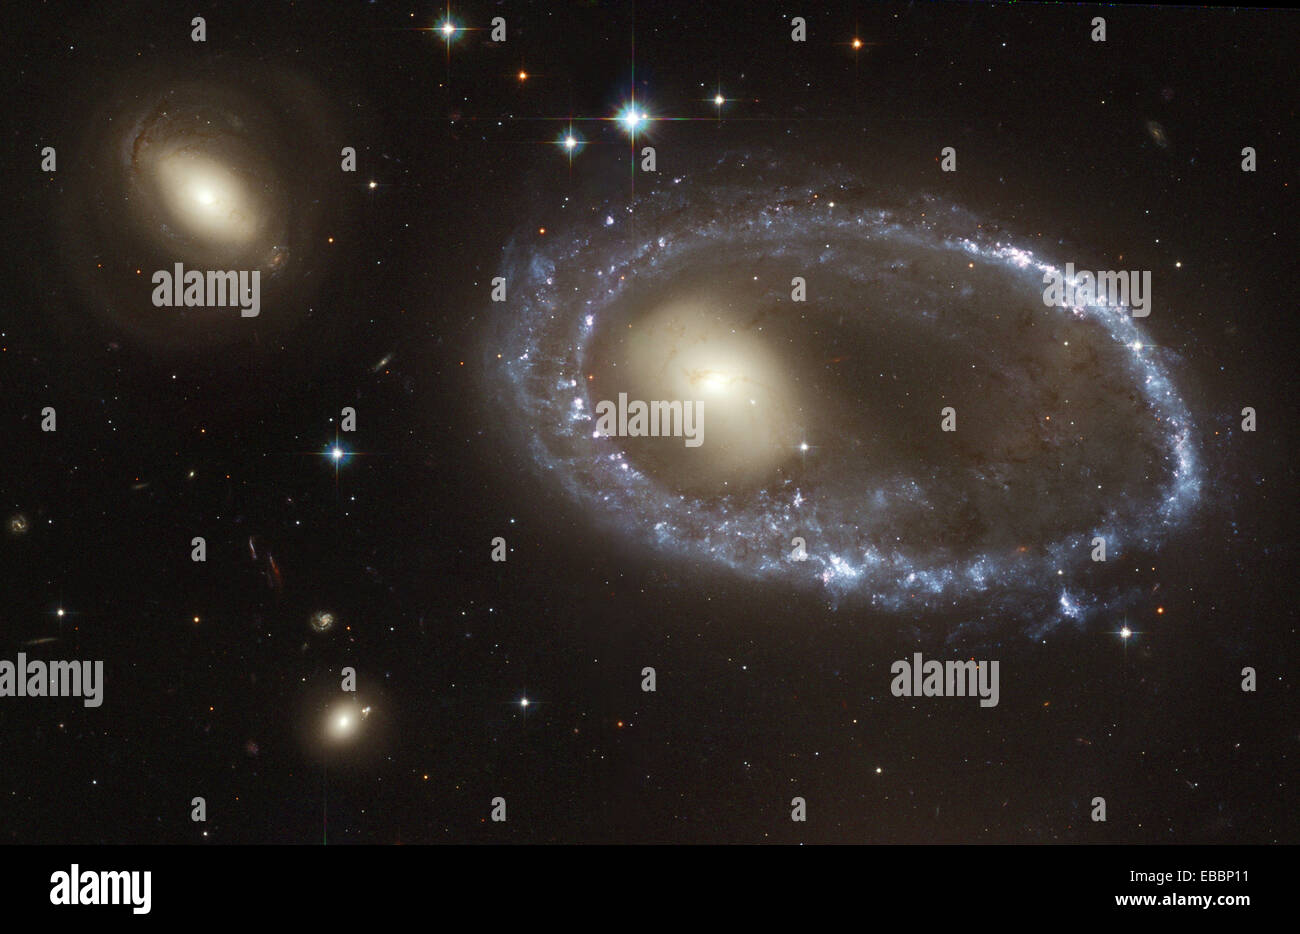 Blue Stars Ring Nucleus of Galaxy AM 0644-741. Resembling a diamond-encrusted bracelet, a ring of brilliant blue - Stock Image